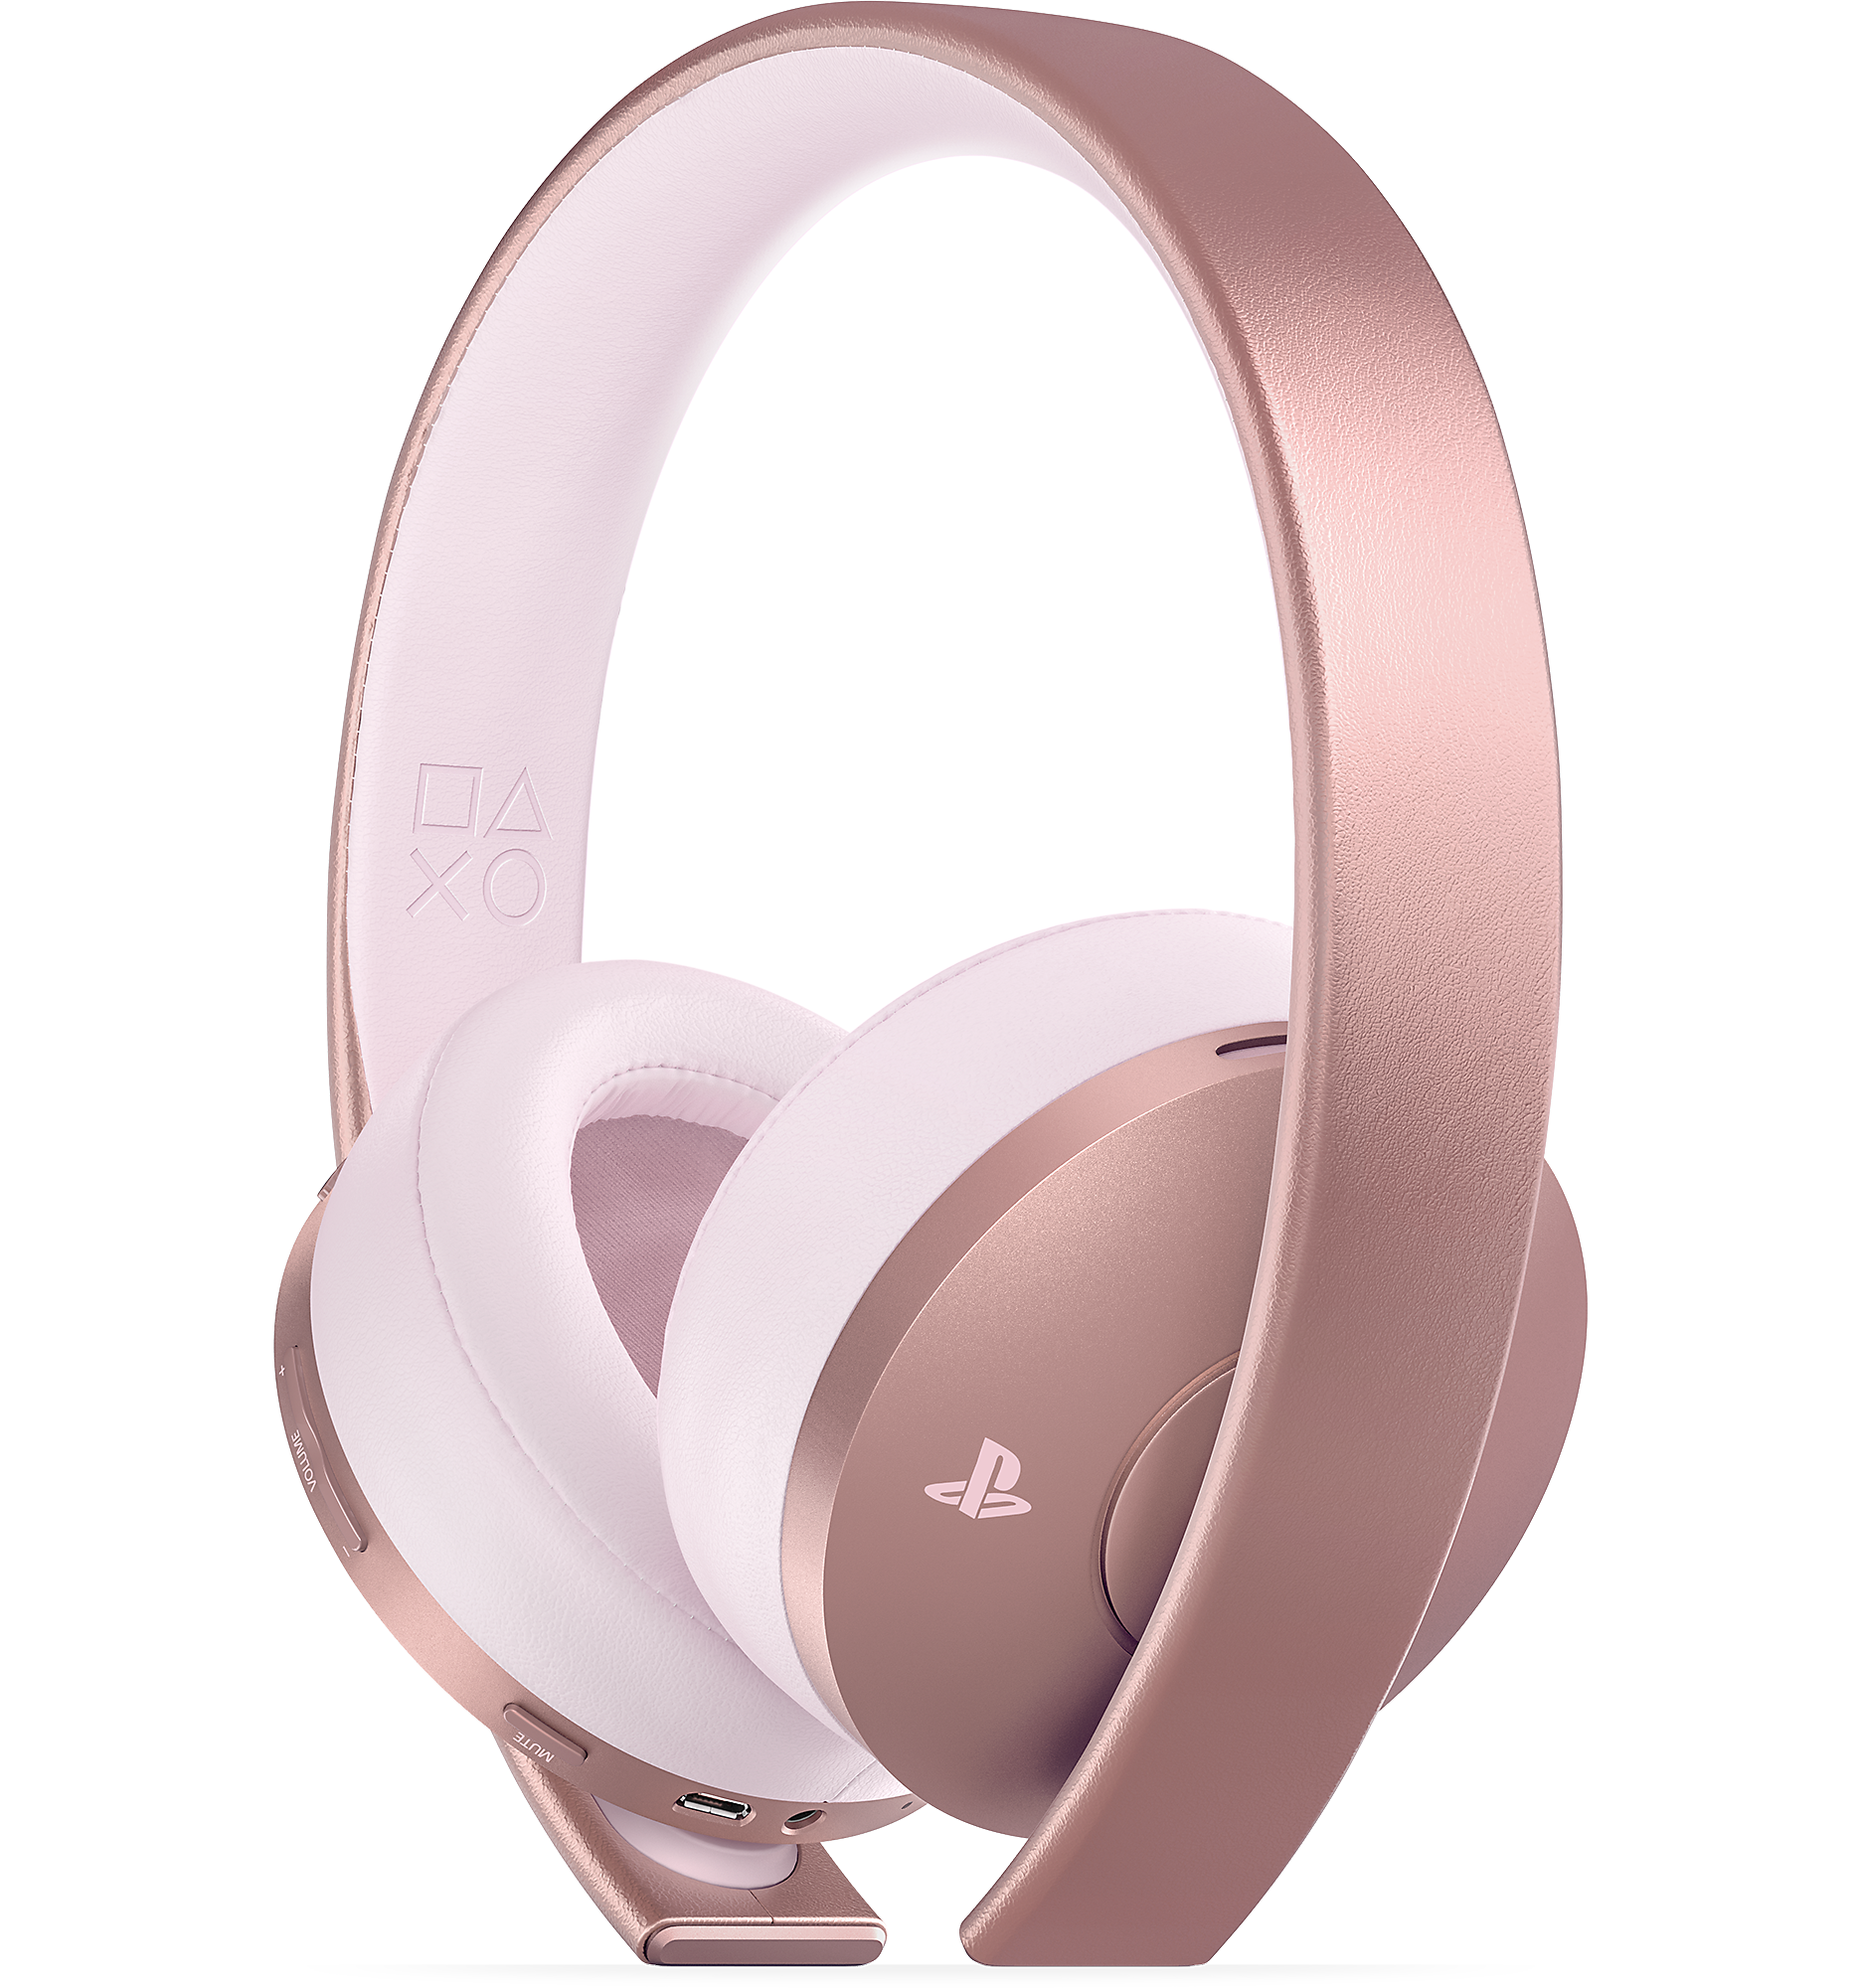 Gold Wireless Headset - Rose Gold Edition - Product Image